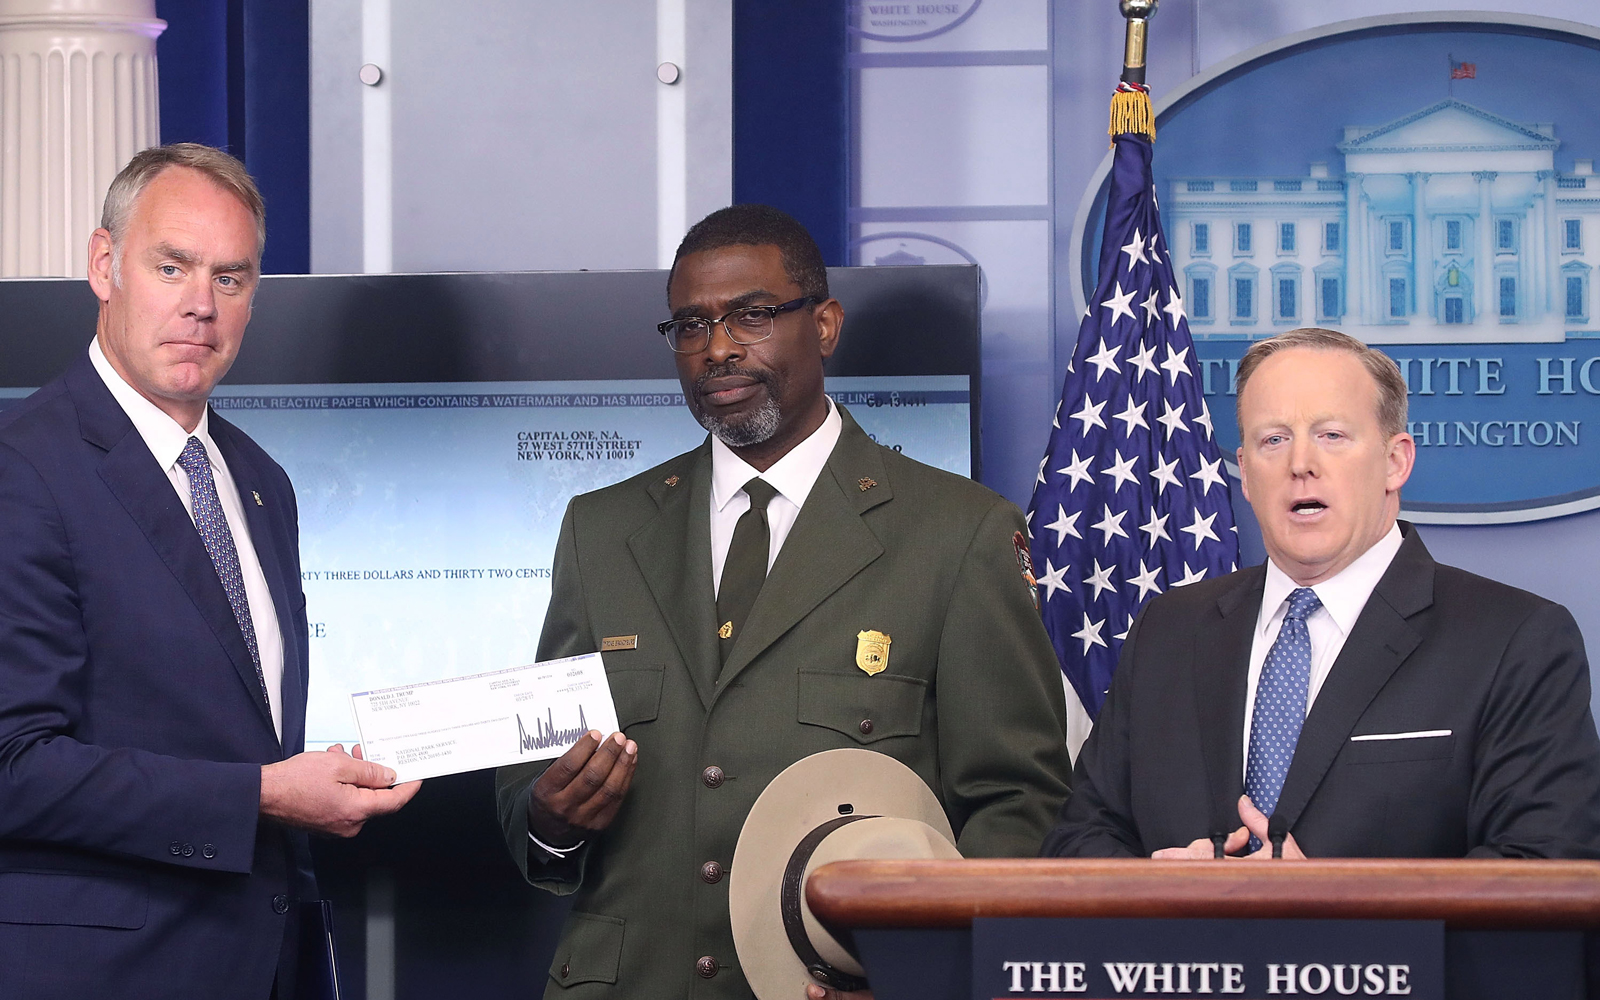 President Trump Donated $78K From His Salary to National Parks. He Wants to Cut Down the Department That Funds It